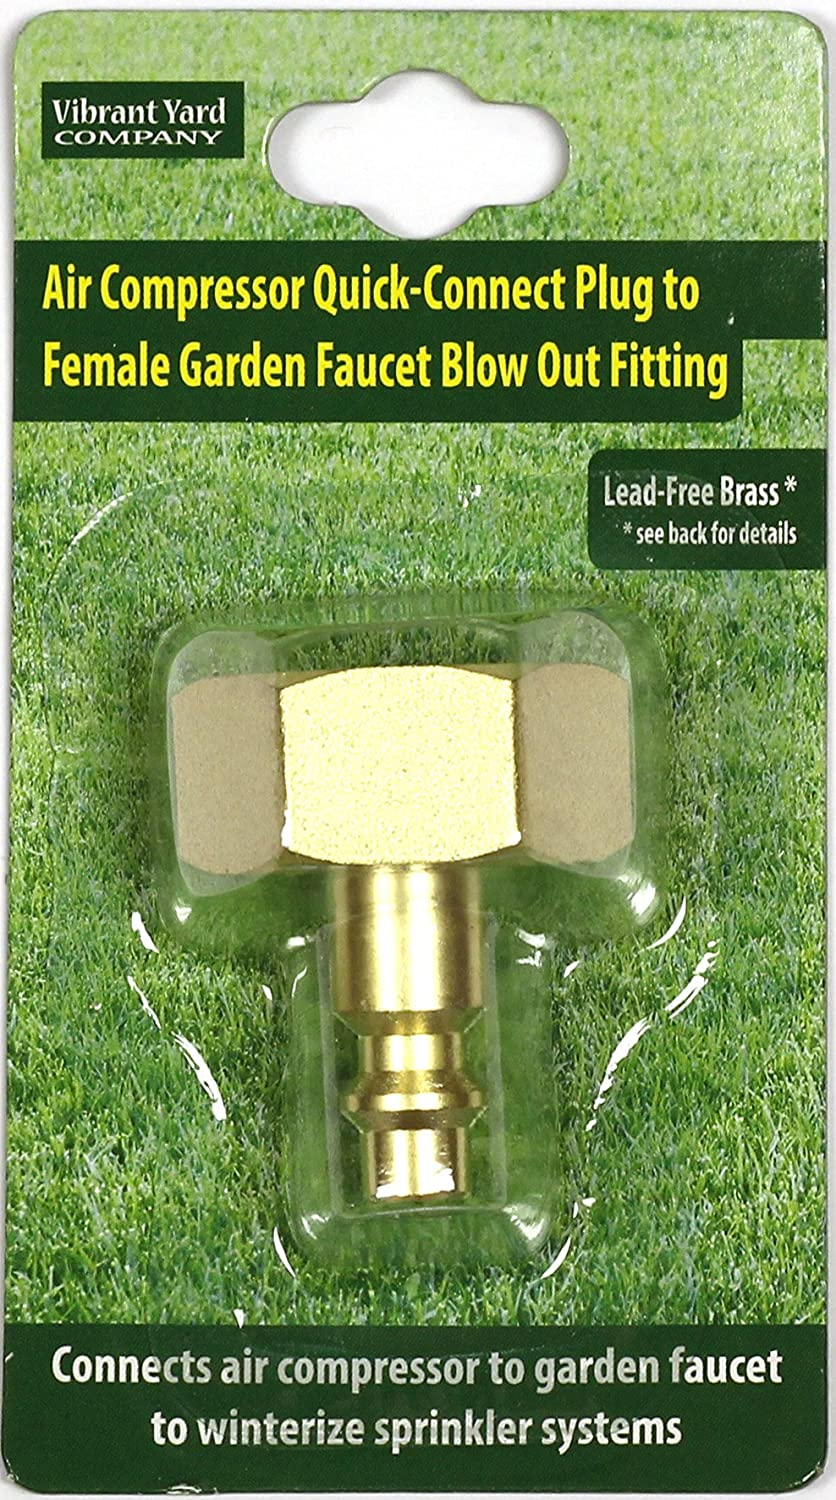 garden faucet. amazon.com : winterize sprinkler systems and outdoor faucets: air compressor quick-connect plug to female garden faucet blow out adapter fitting (solid e